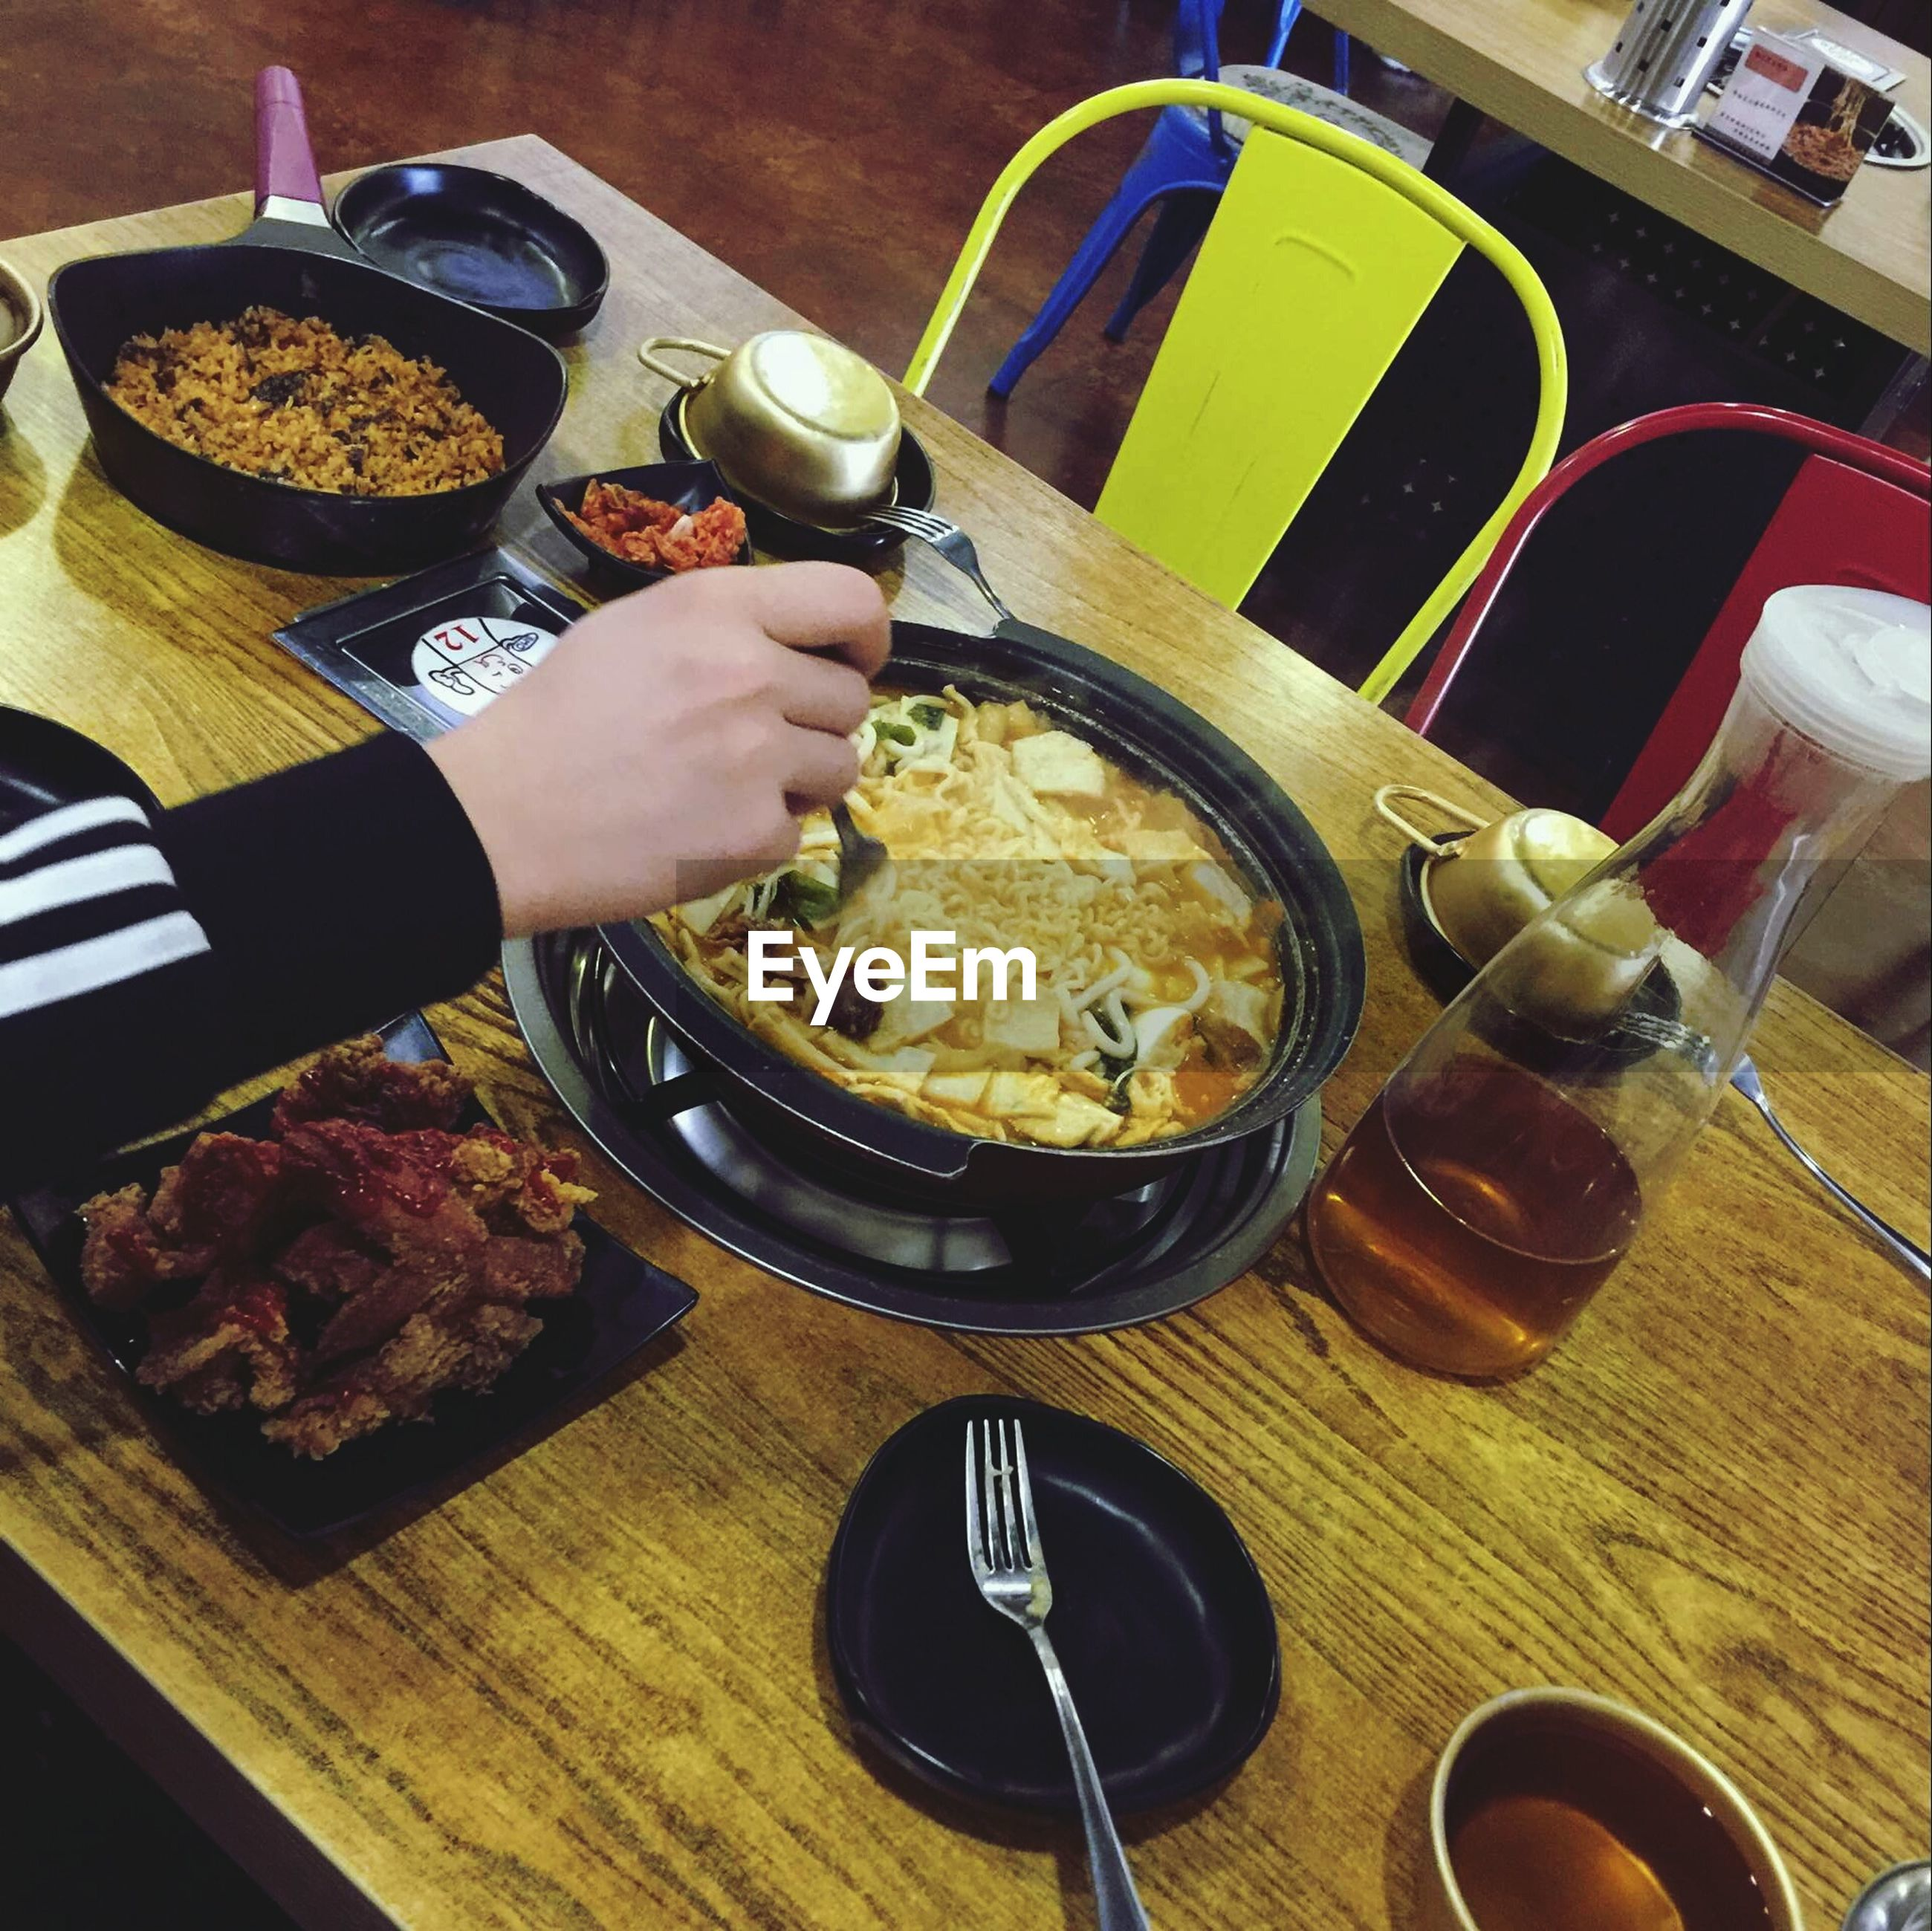 food, food and drink, real people, plate, indoors, one person, lifestyles, table, holding, freshness, drink, ready-to-eat, refreshment, eating, human body part, human hand, temptation, healthy eating, adults only, people, day, adult